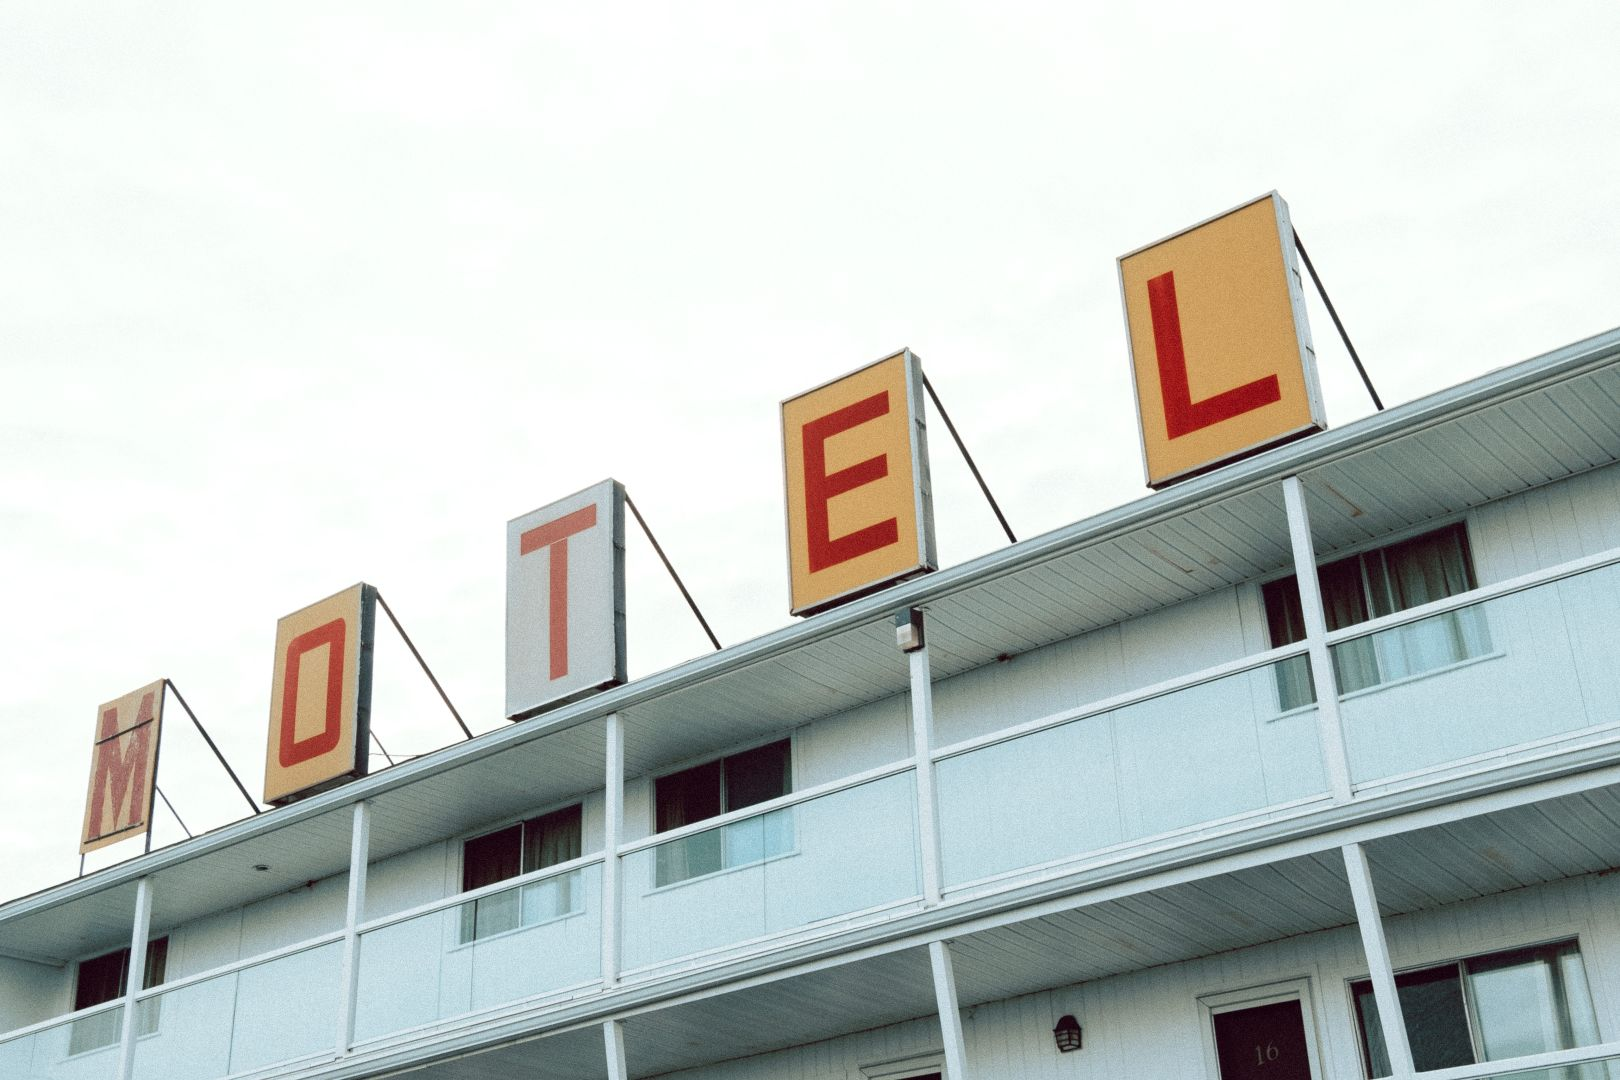 A photo depicting Motel Saint John Sign